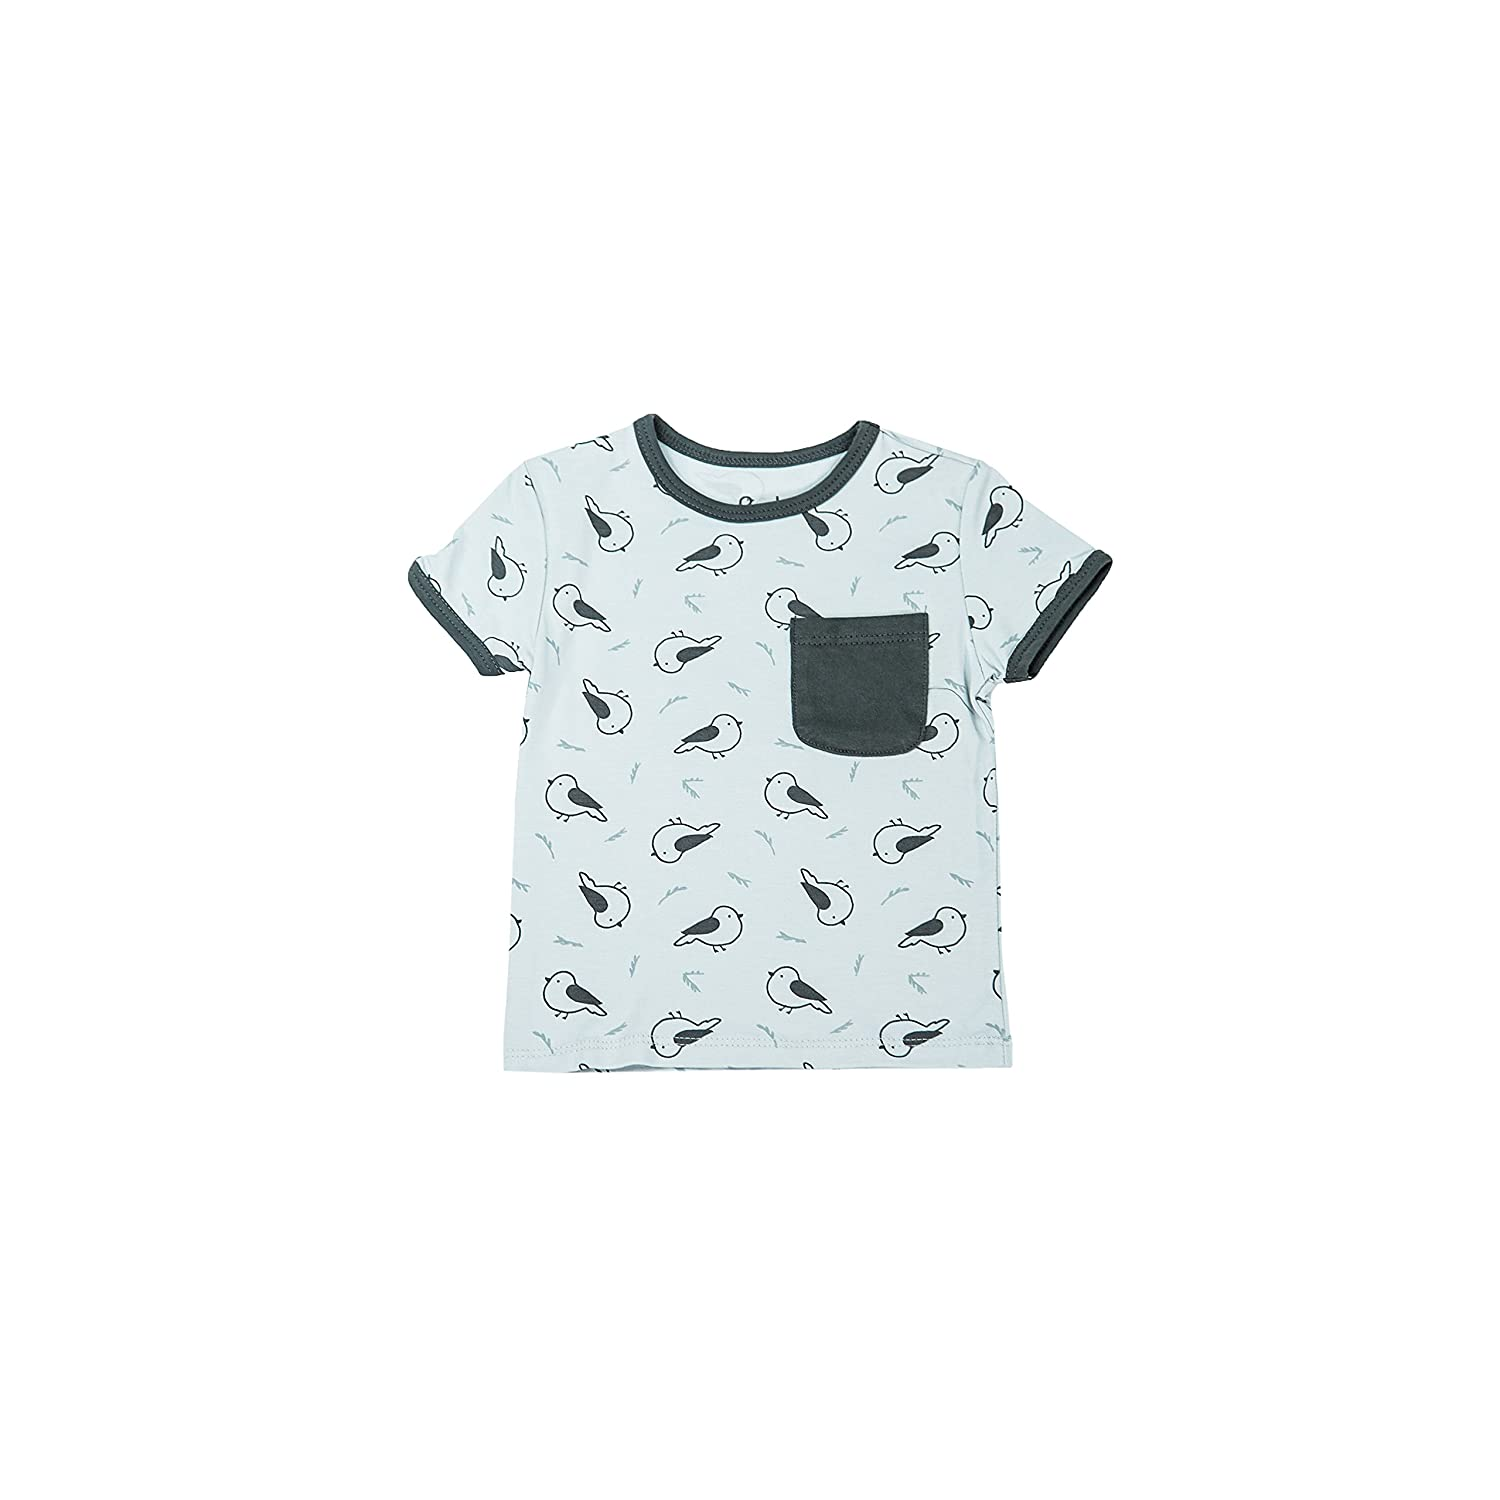 16bf90ea Amazon.com: Baby T Shirt with Pocket for Boy or Girl Infants and Toddlers,  Premium Bamboo Tee - Unisex Available Sizes 12 Mo - 4T: Clothing